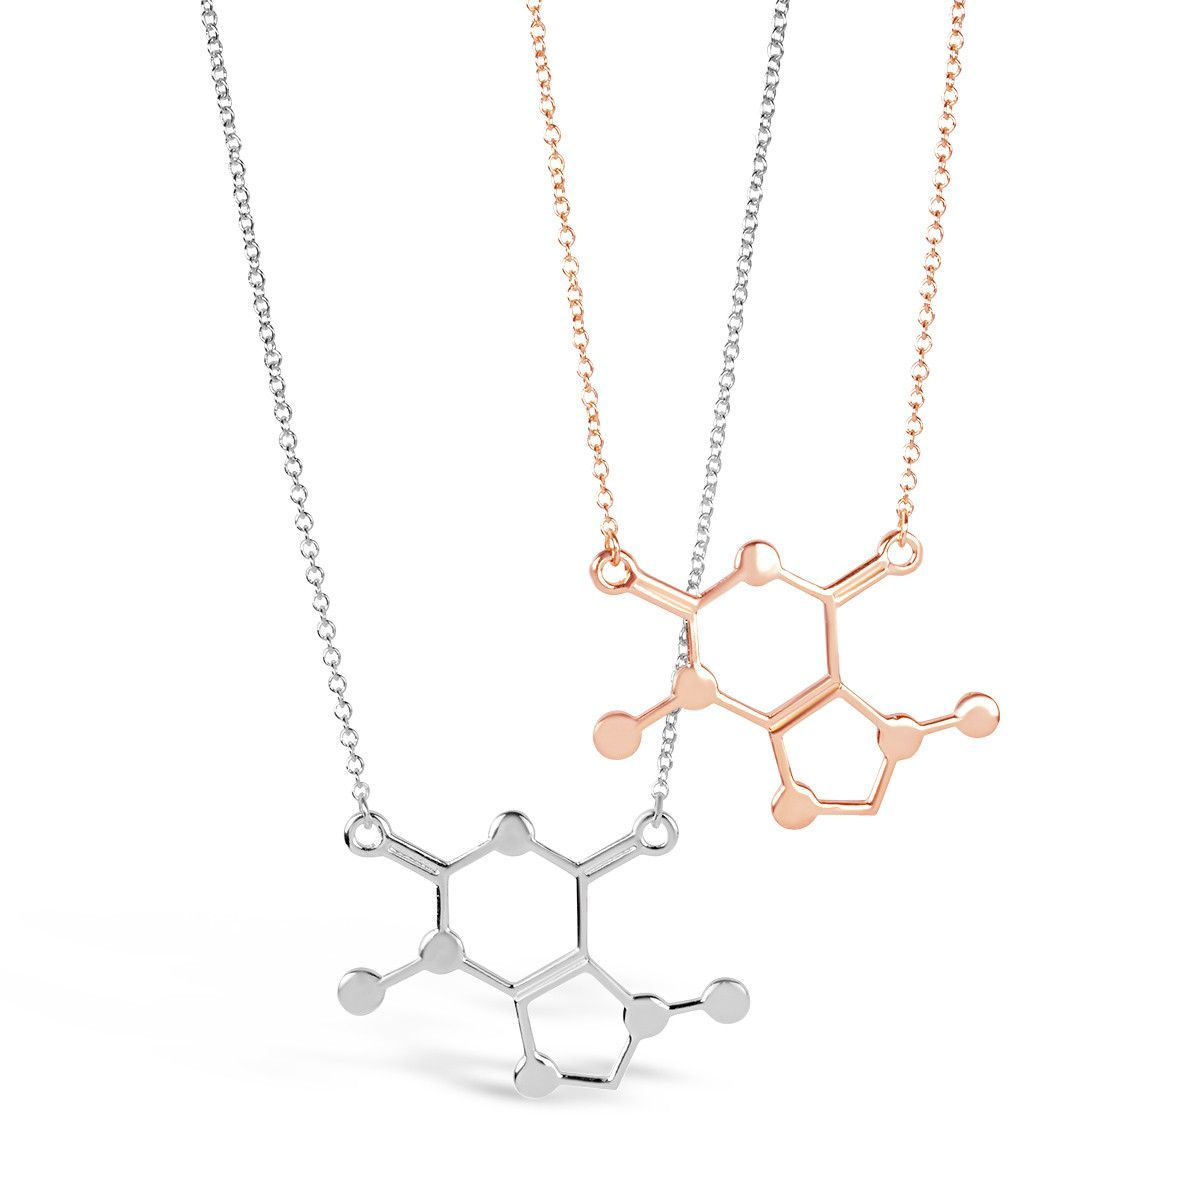 jewelry molecule serotonin women dopamine fashion new item lphzqh dna pendant necklace silver gold structure chemical